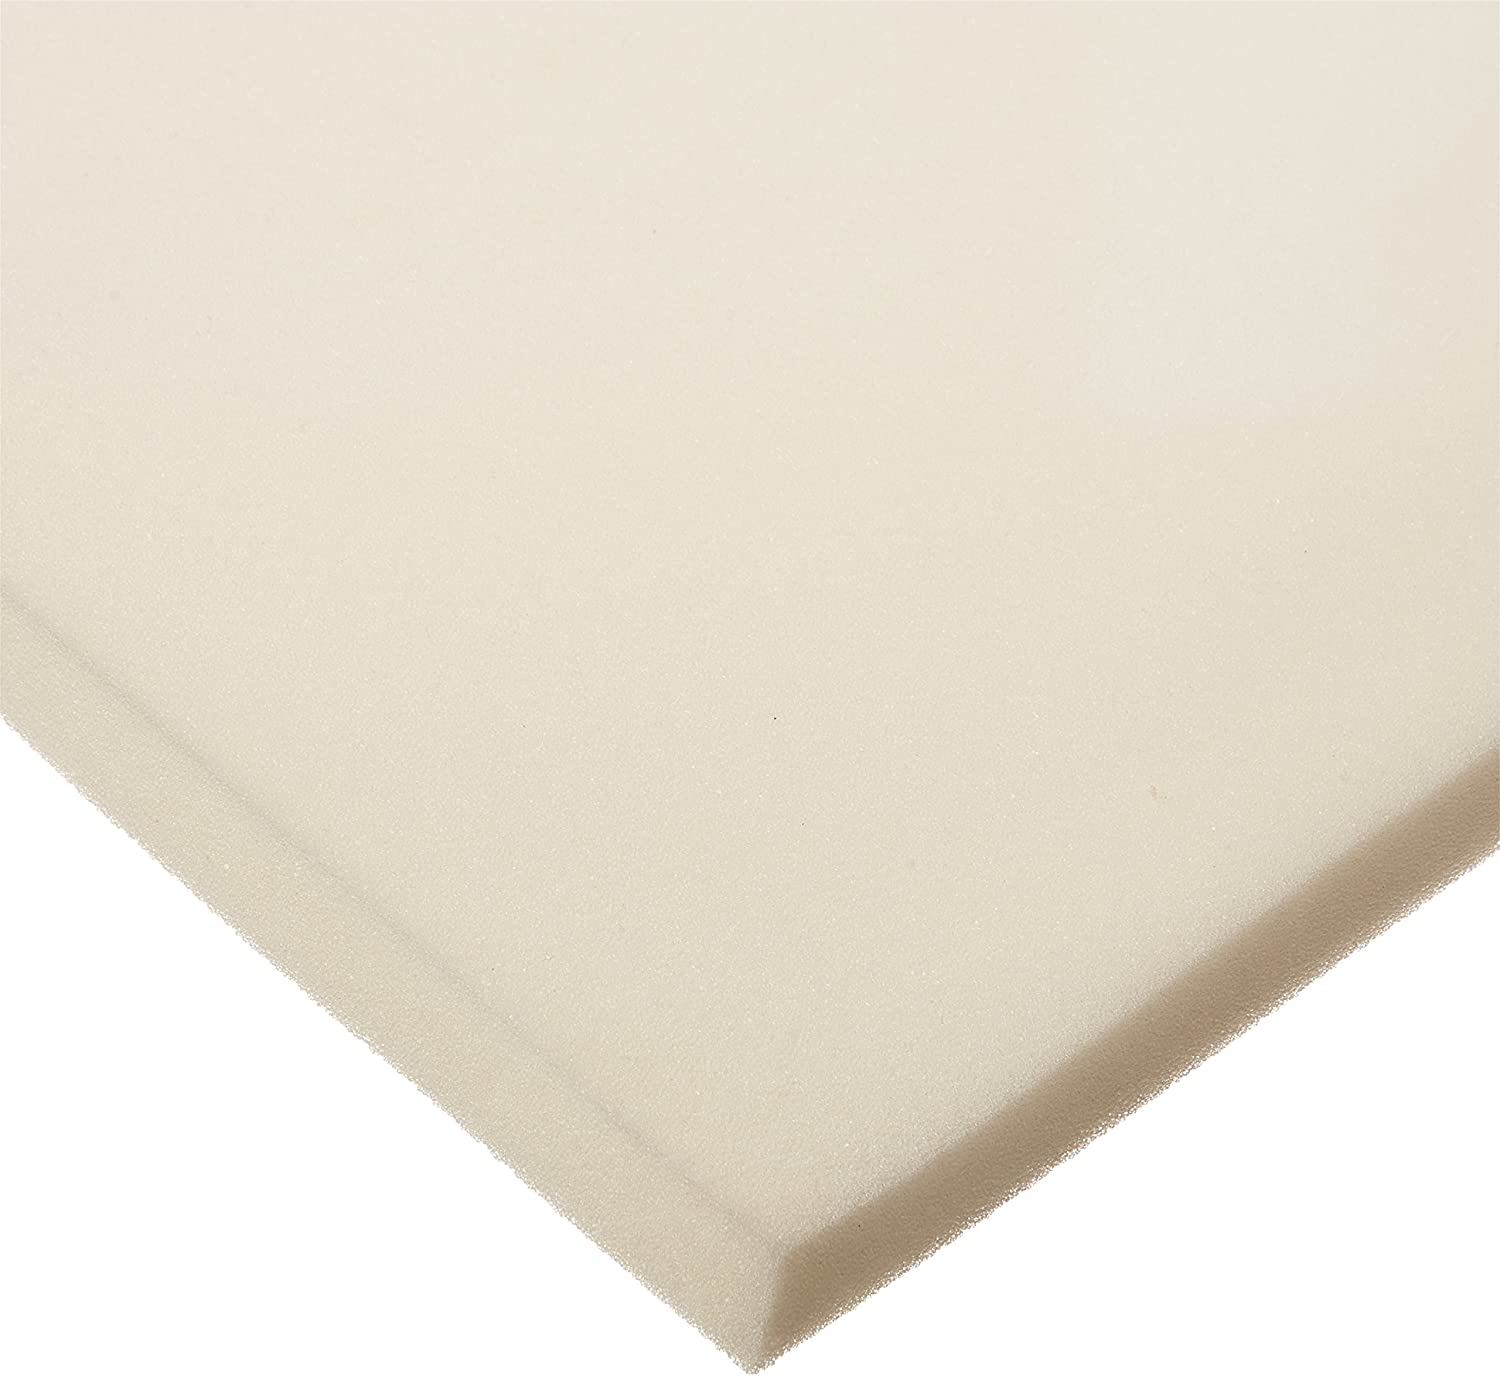 FoamRush 3 x 24 x 72 High Density Upholstery Foam Cushion Made in USA Upholstery Sheet, Foam Padding, Seat Replacement, Chair Cushion Replacement, Square Foam, Wheelchair Seat Cushion